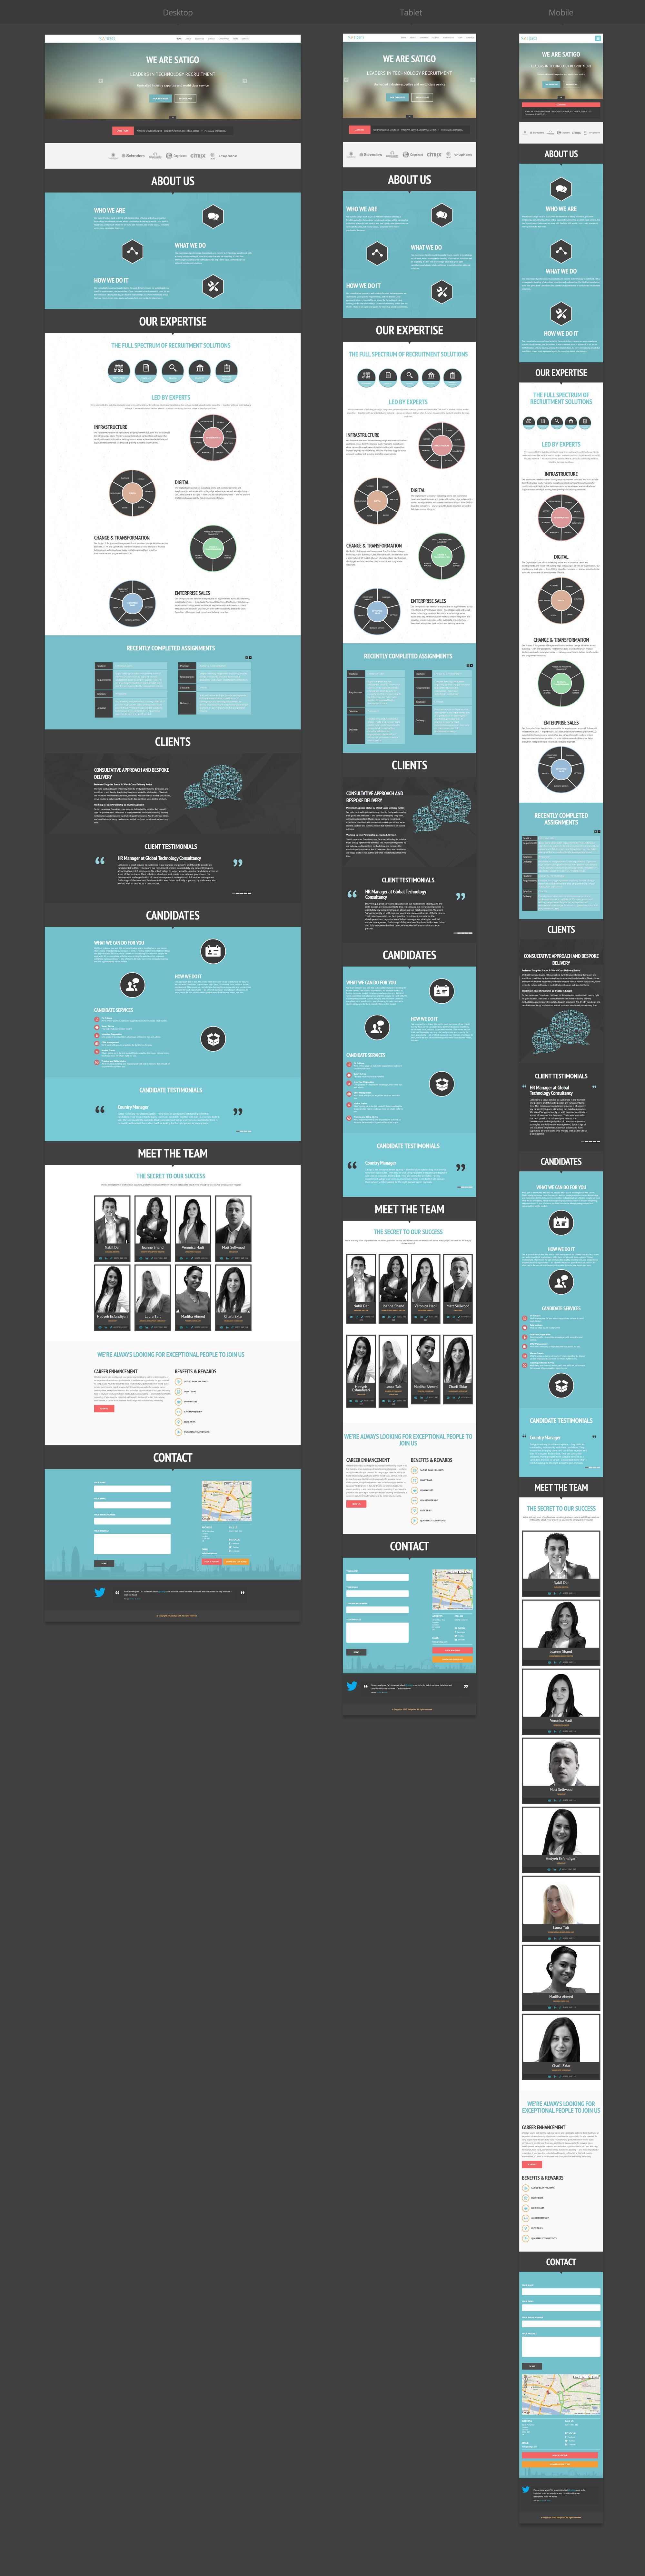 Sorry You Ve Been Rate Limited Web Design Responsive Web Design Web Layout Design